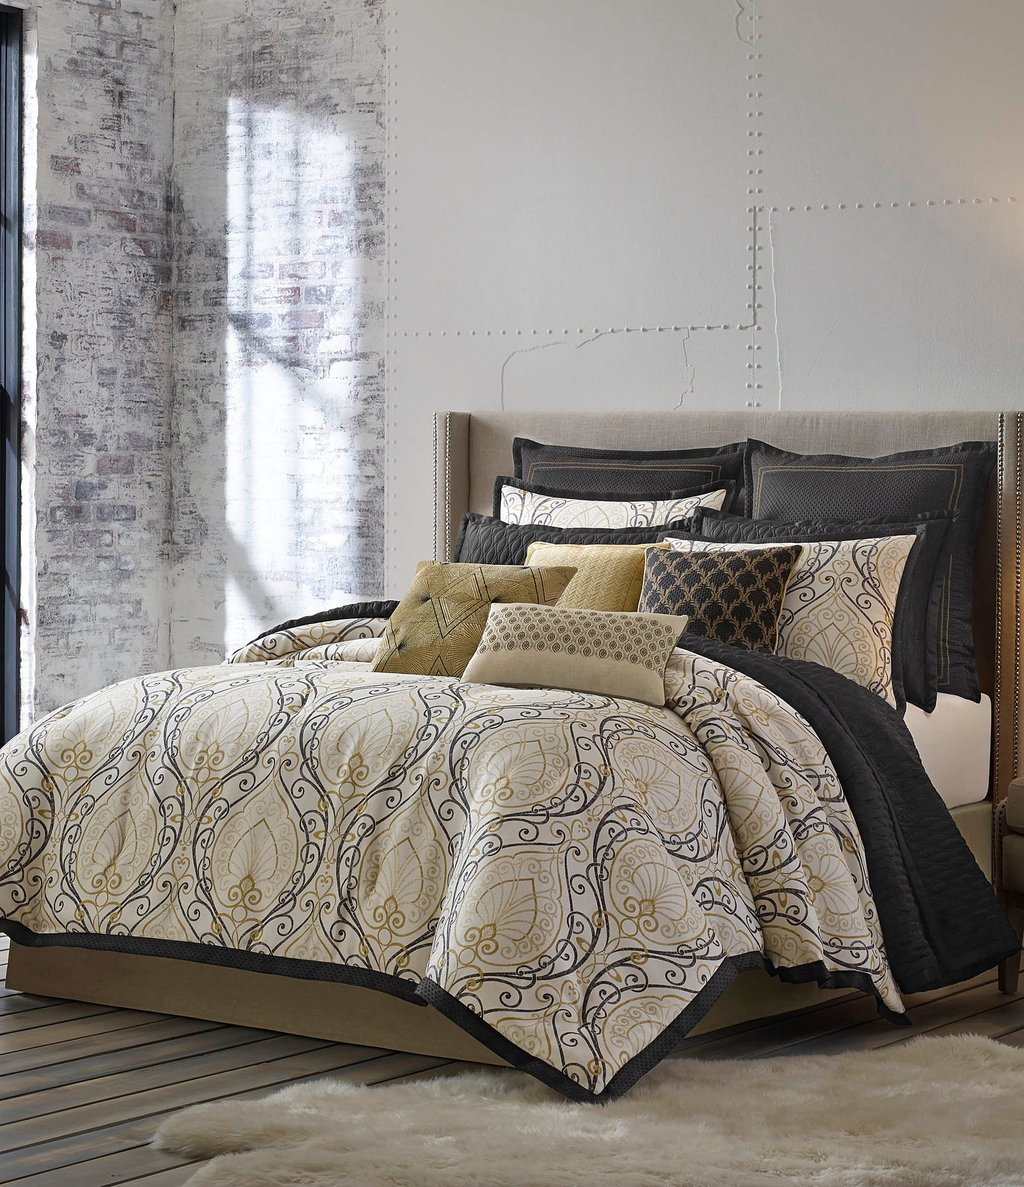 Image of: Candice Olson Releve Scroll Jacquard Comforter Set Dillard The Advantages of Candice Olson Bedding